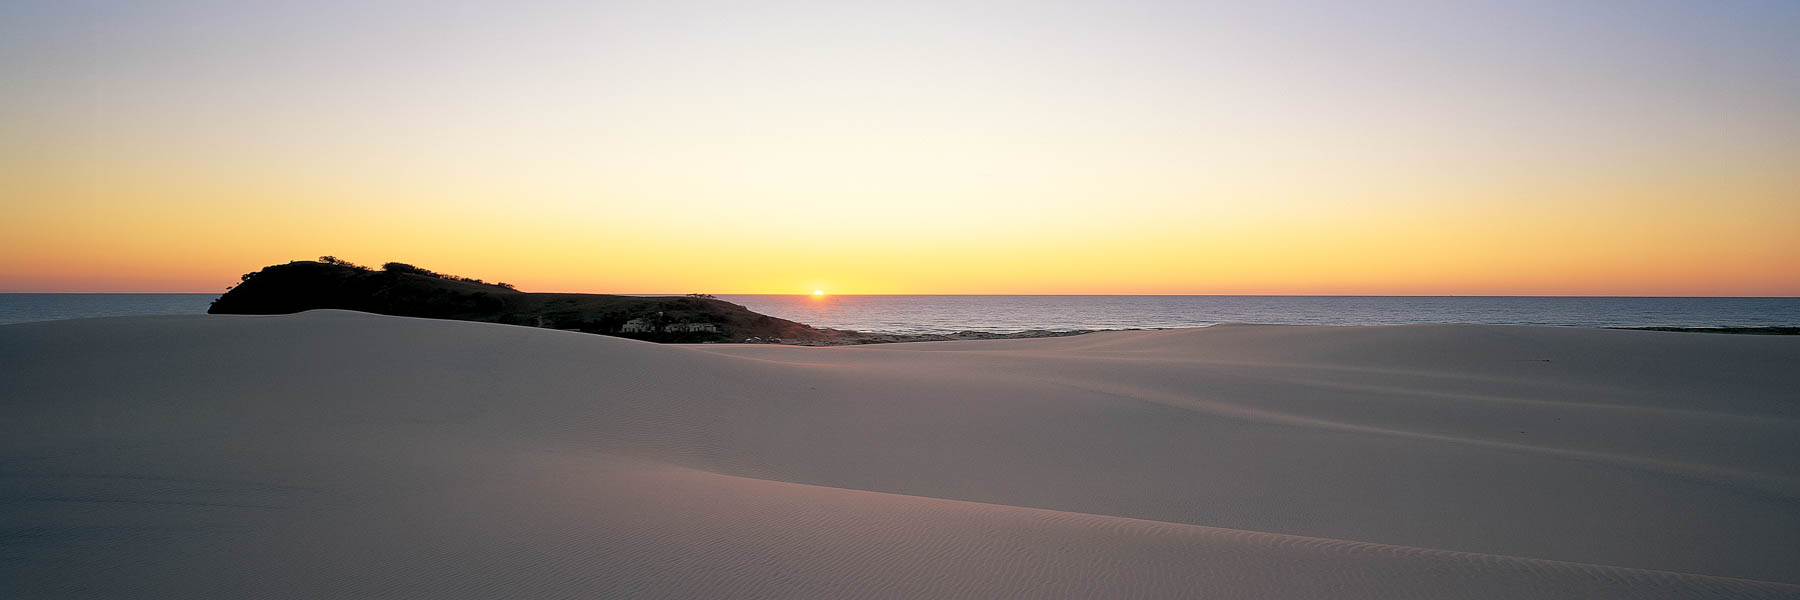 Sand dunes at Indian Head, Fraser Island, Qld, Australia.